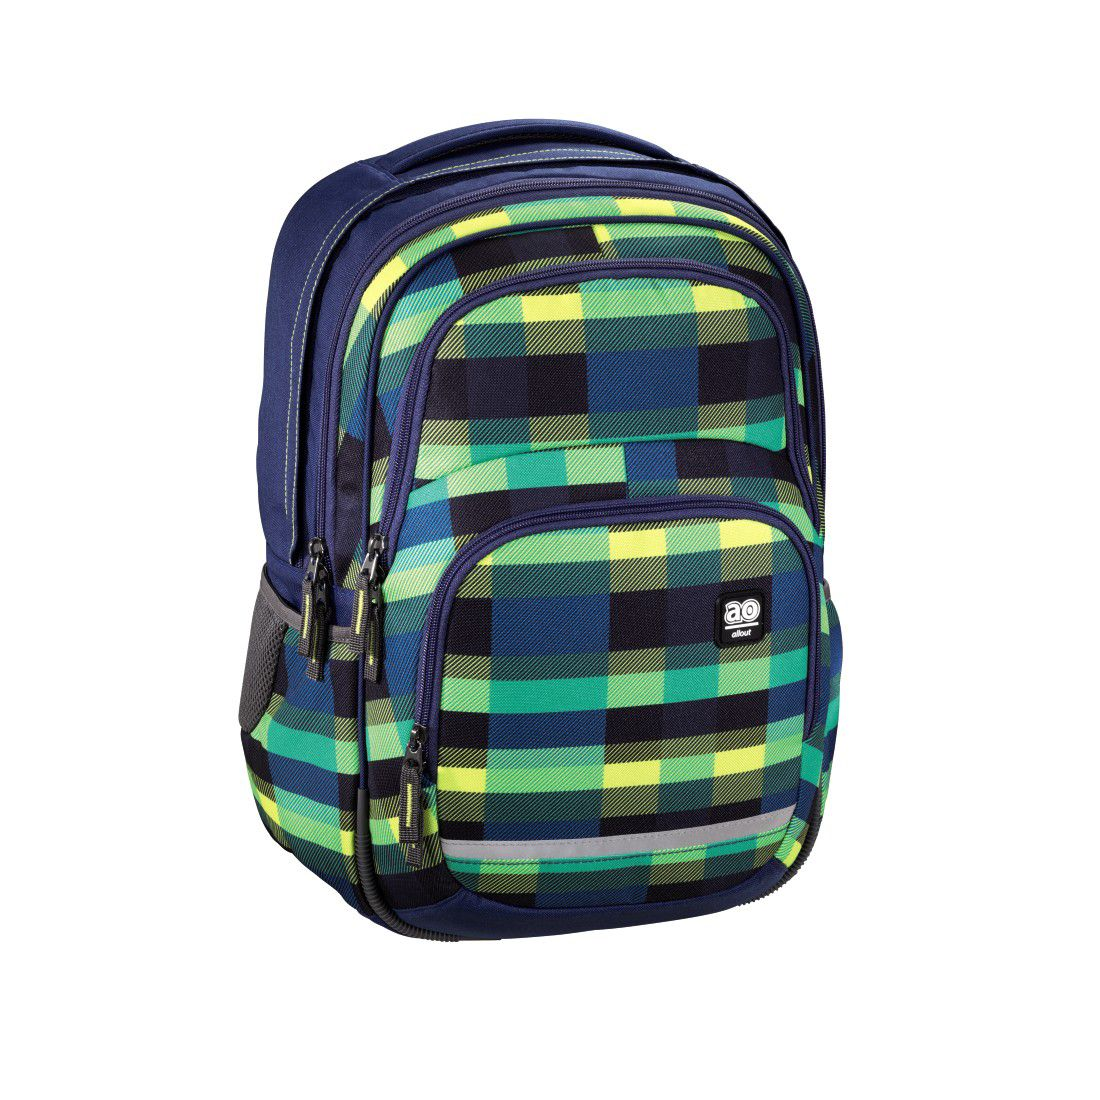 ALL OUT All Out Rucksack Blaby, Summer Check Green